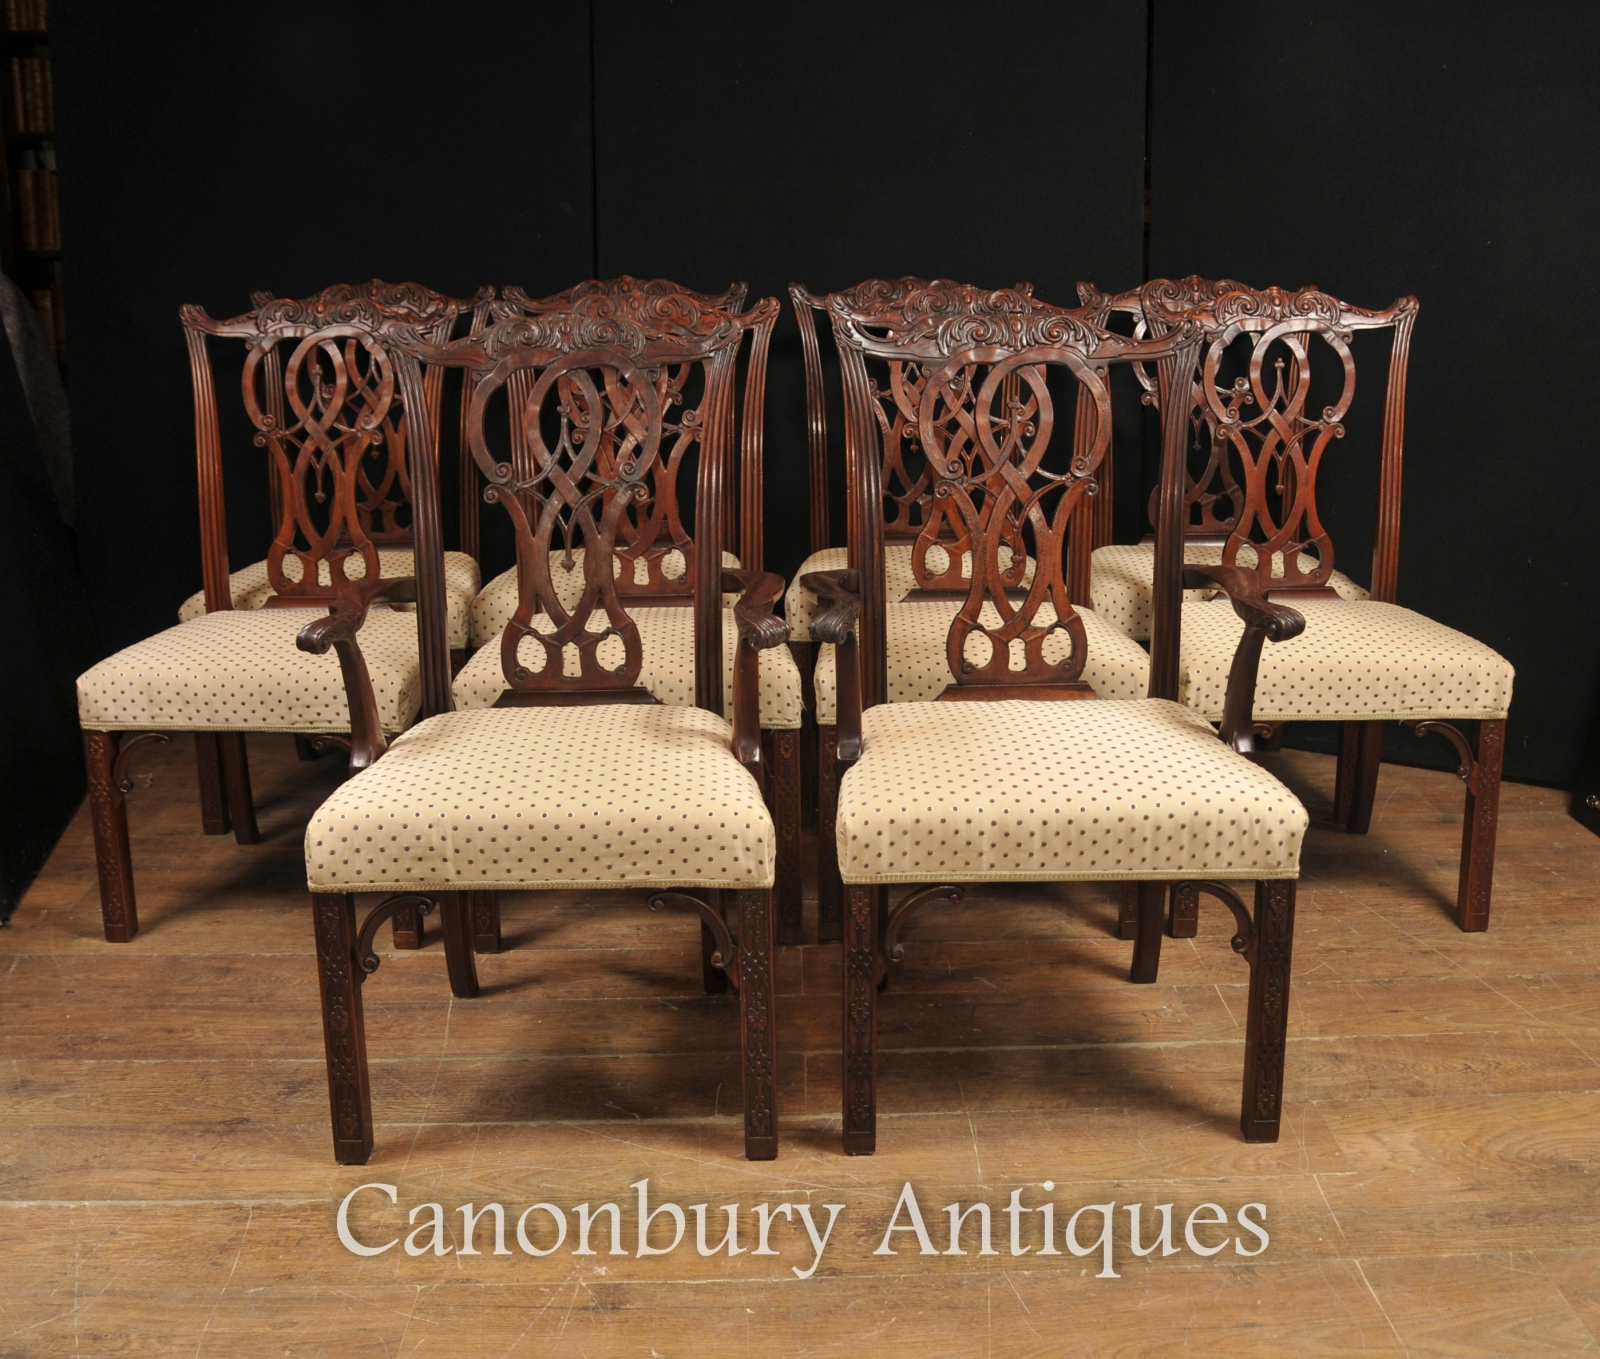 Set 10 Mahogany Chippendale Dining Chairs English Furniture EBay